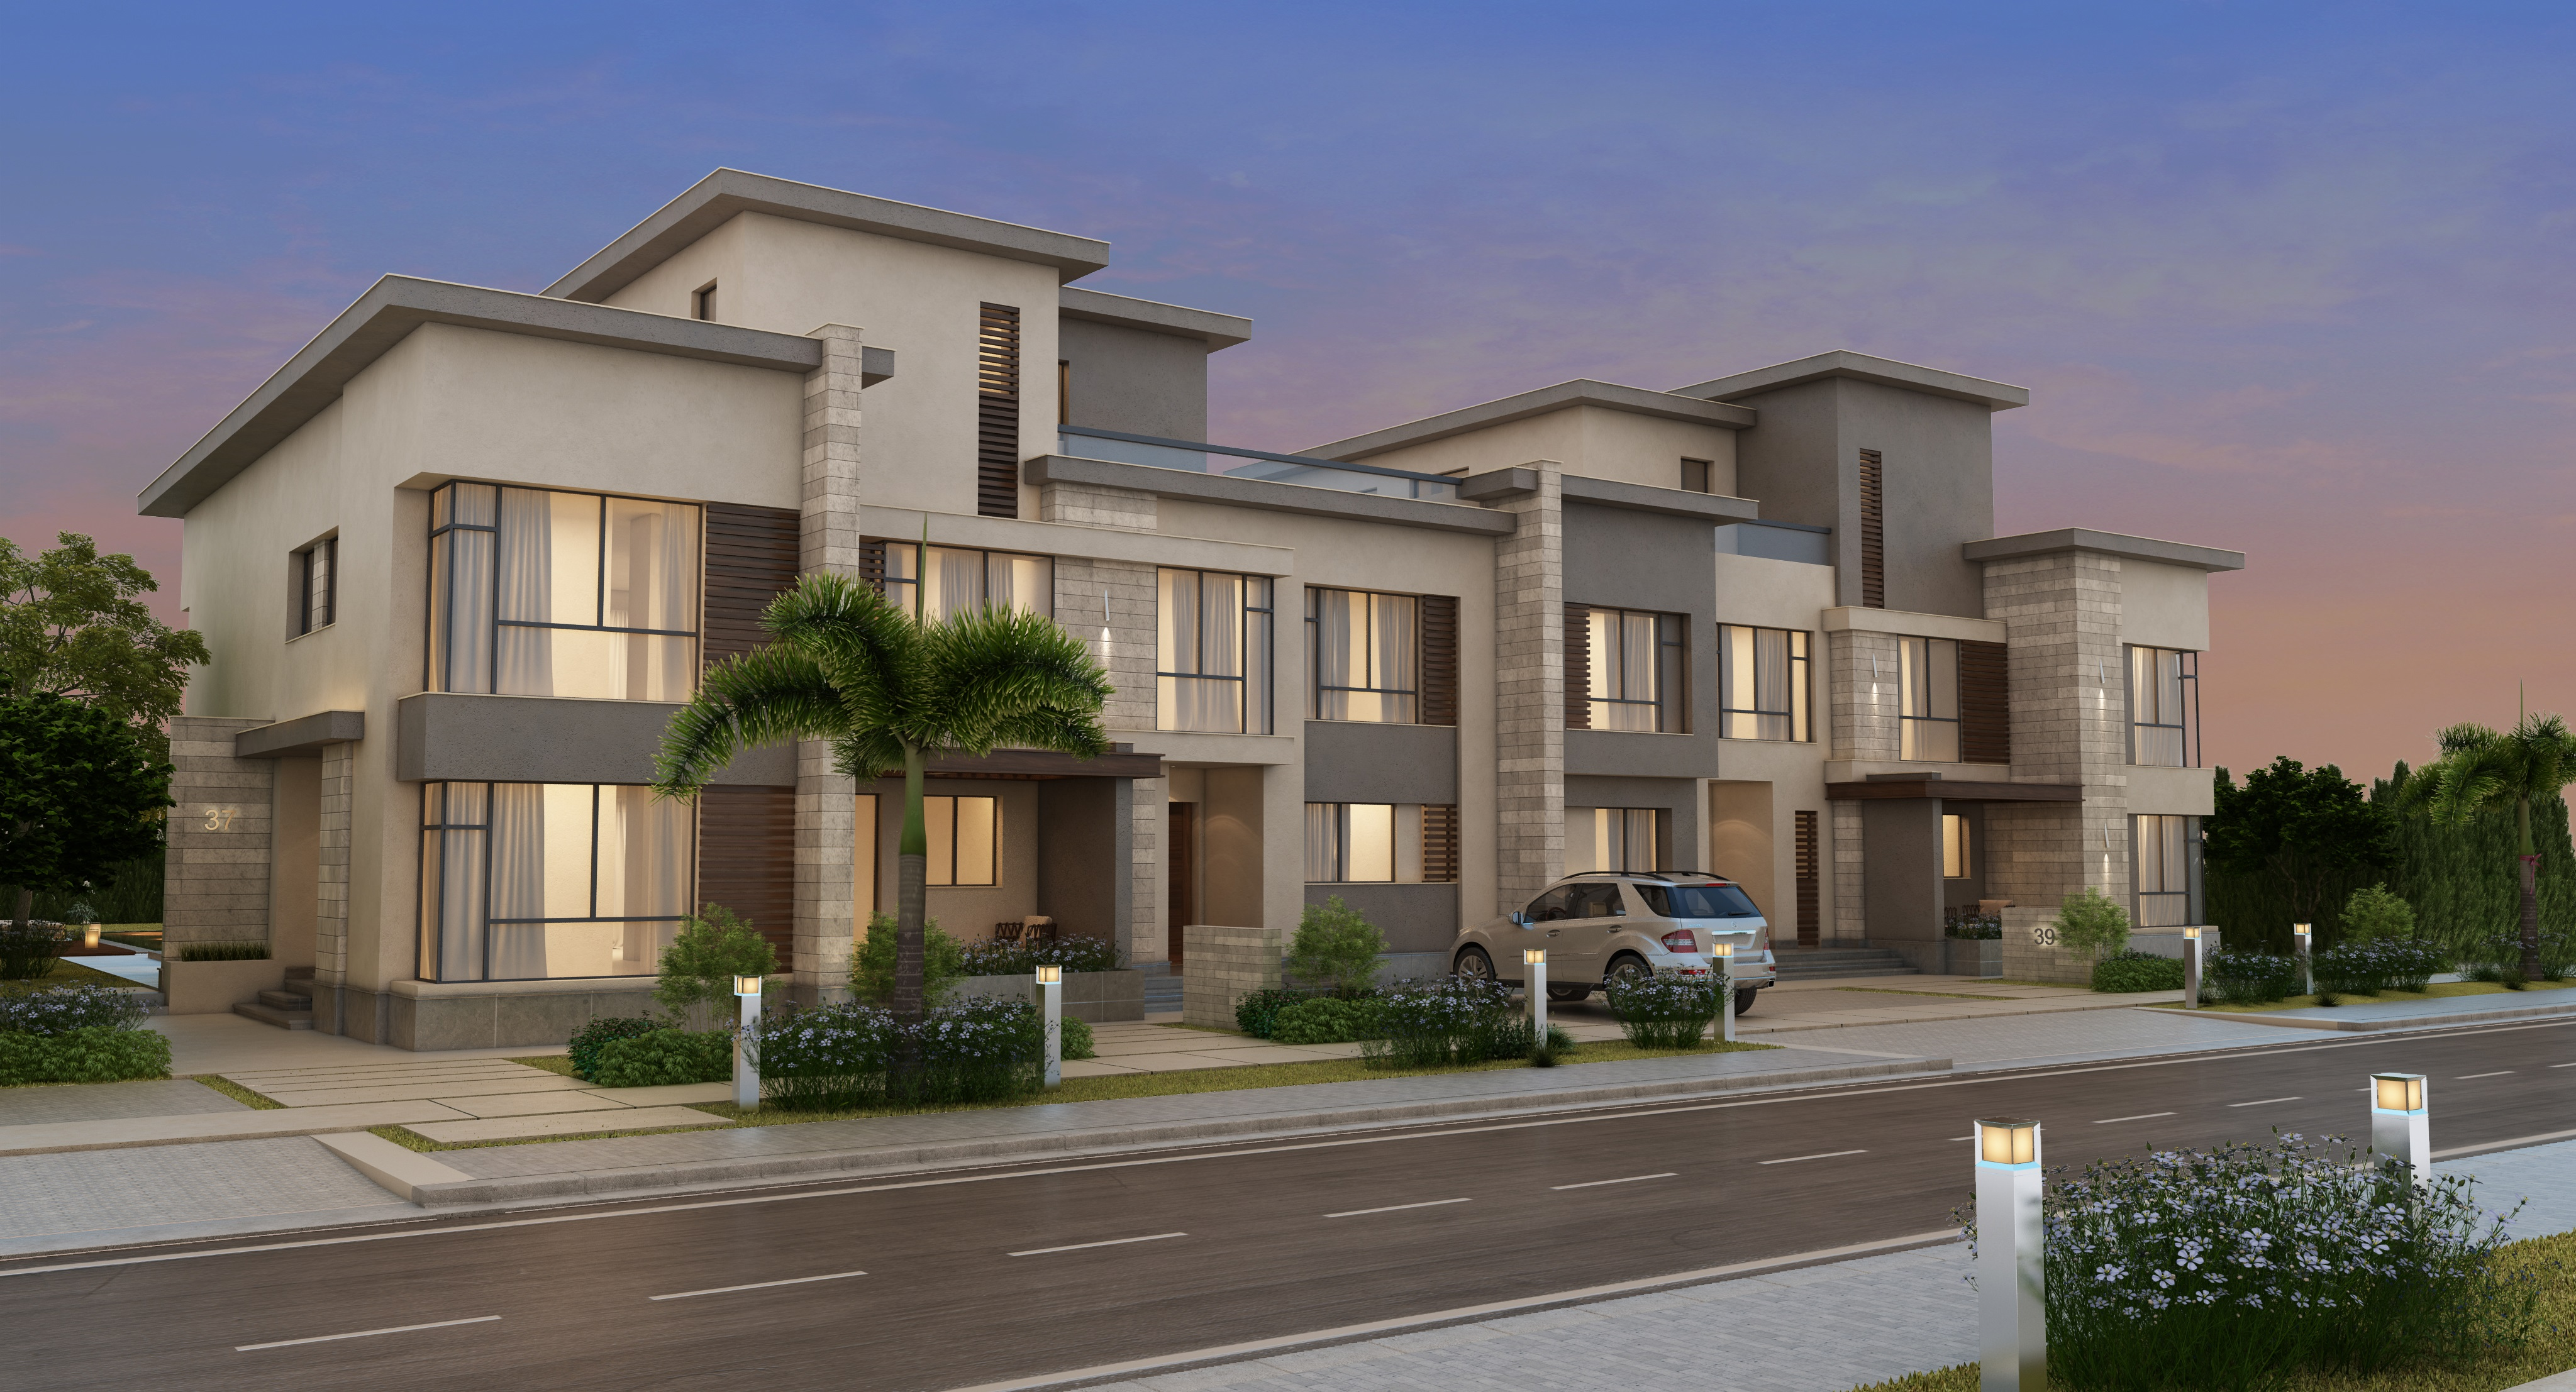 740-townhouse-middle-left